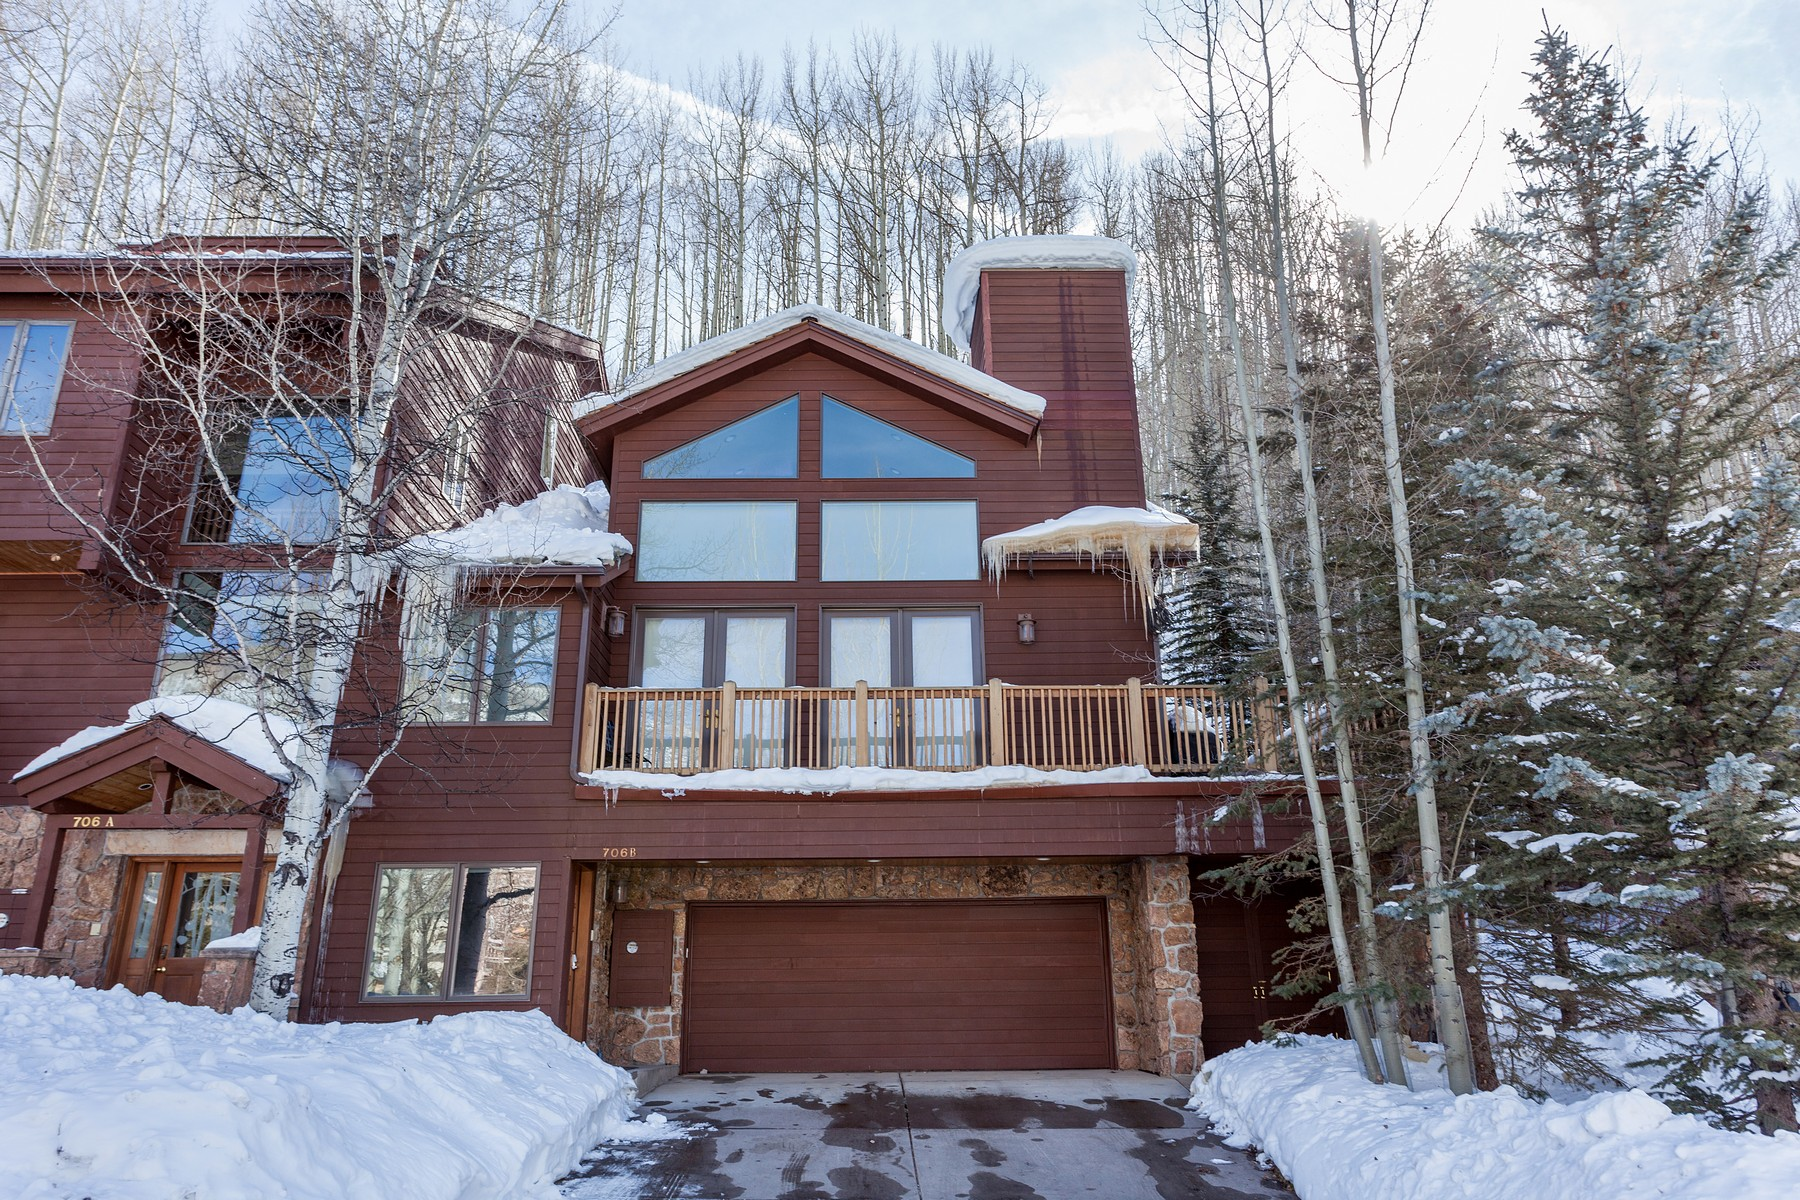 Casa Unifamiliar por un Venta en Great Location on Forest Road Walking Distance to Skiing 706 Forest Rd #B Vail, Colorado 81657 Estados Unidos